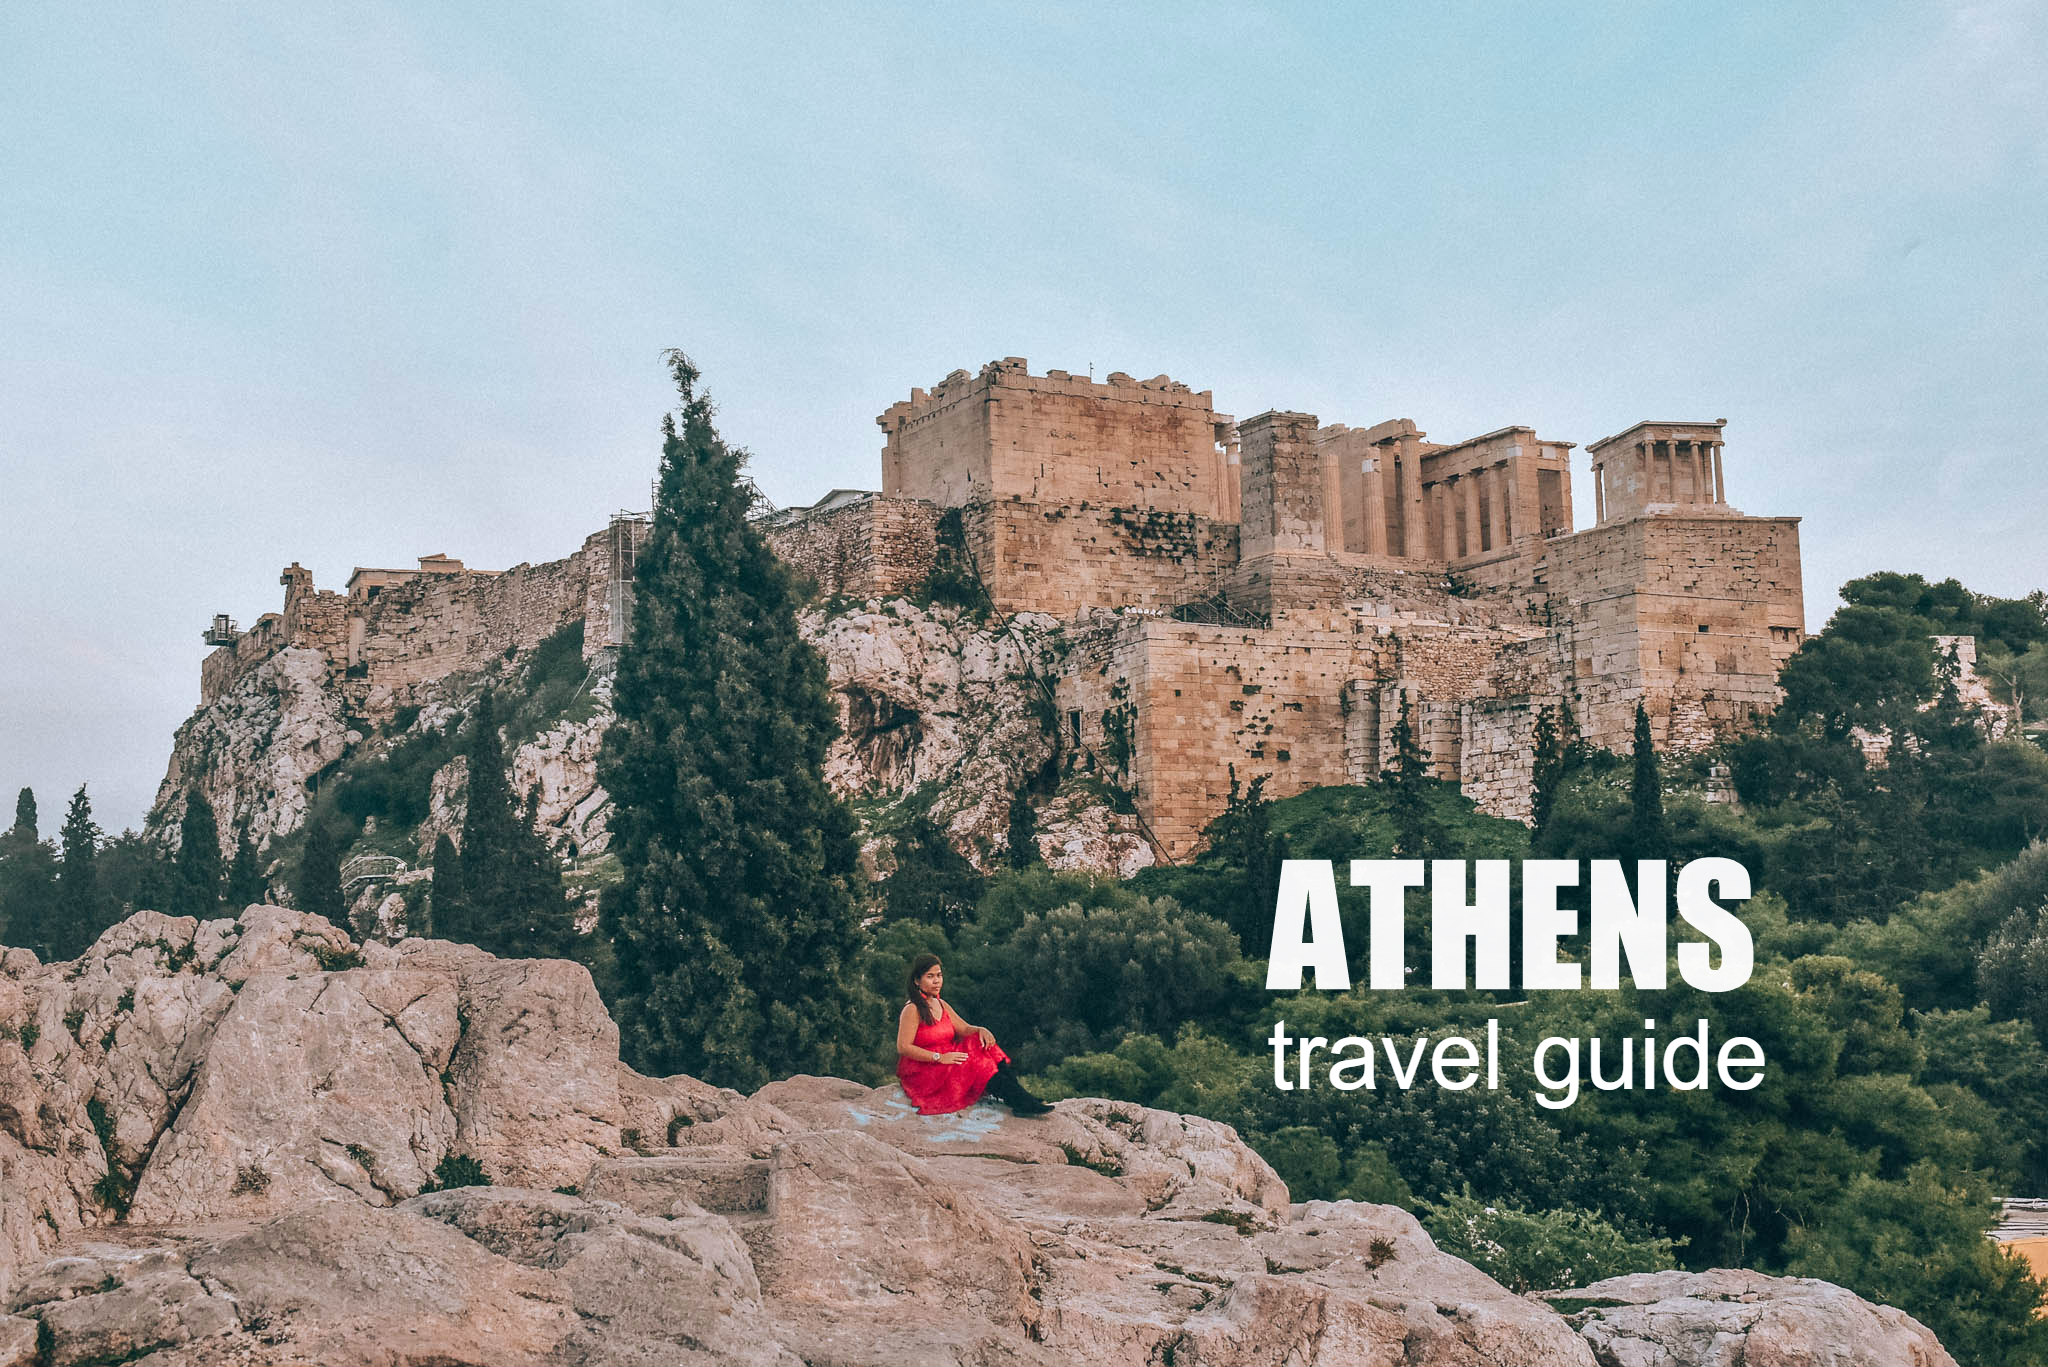 ATHENS TRAVEL GUIDE (ITINERARY + BUDGET) 2019